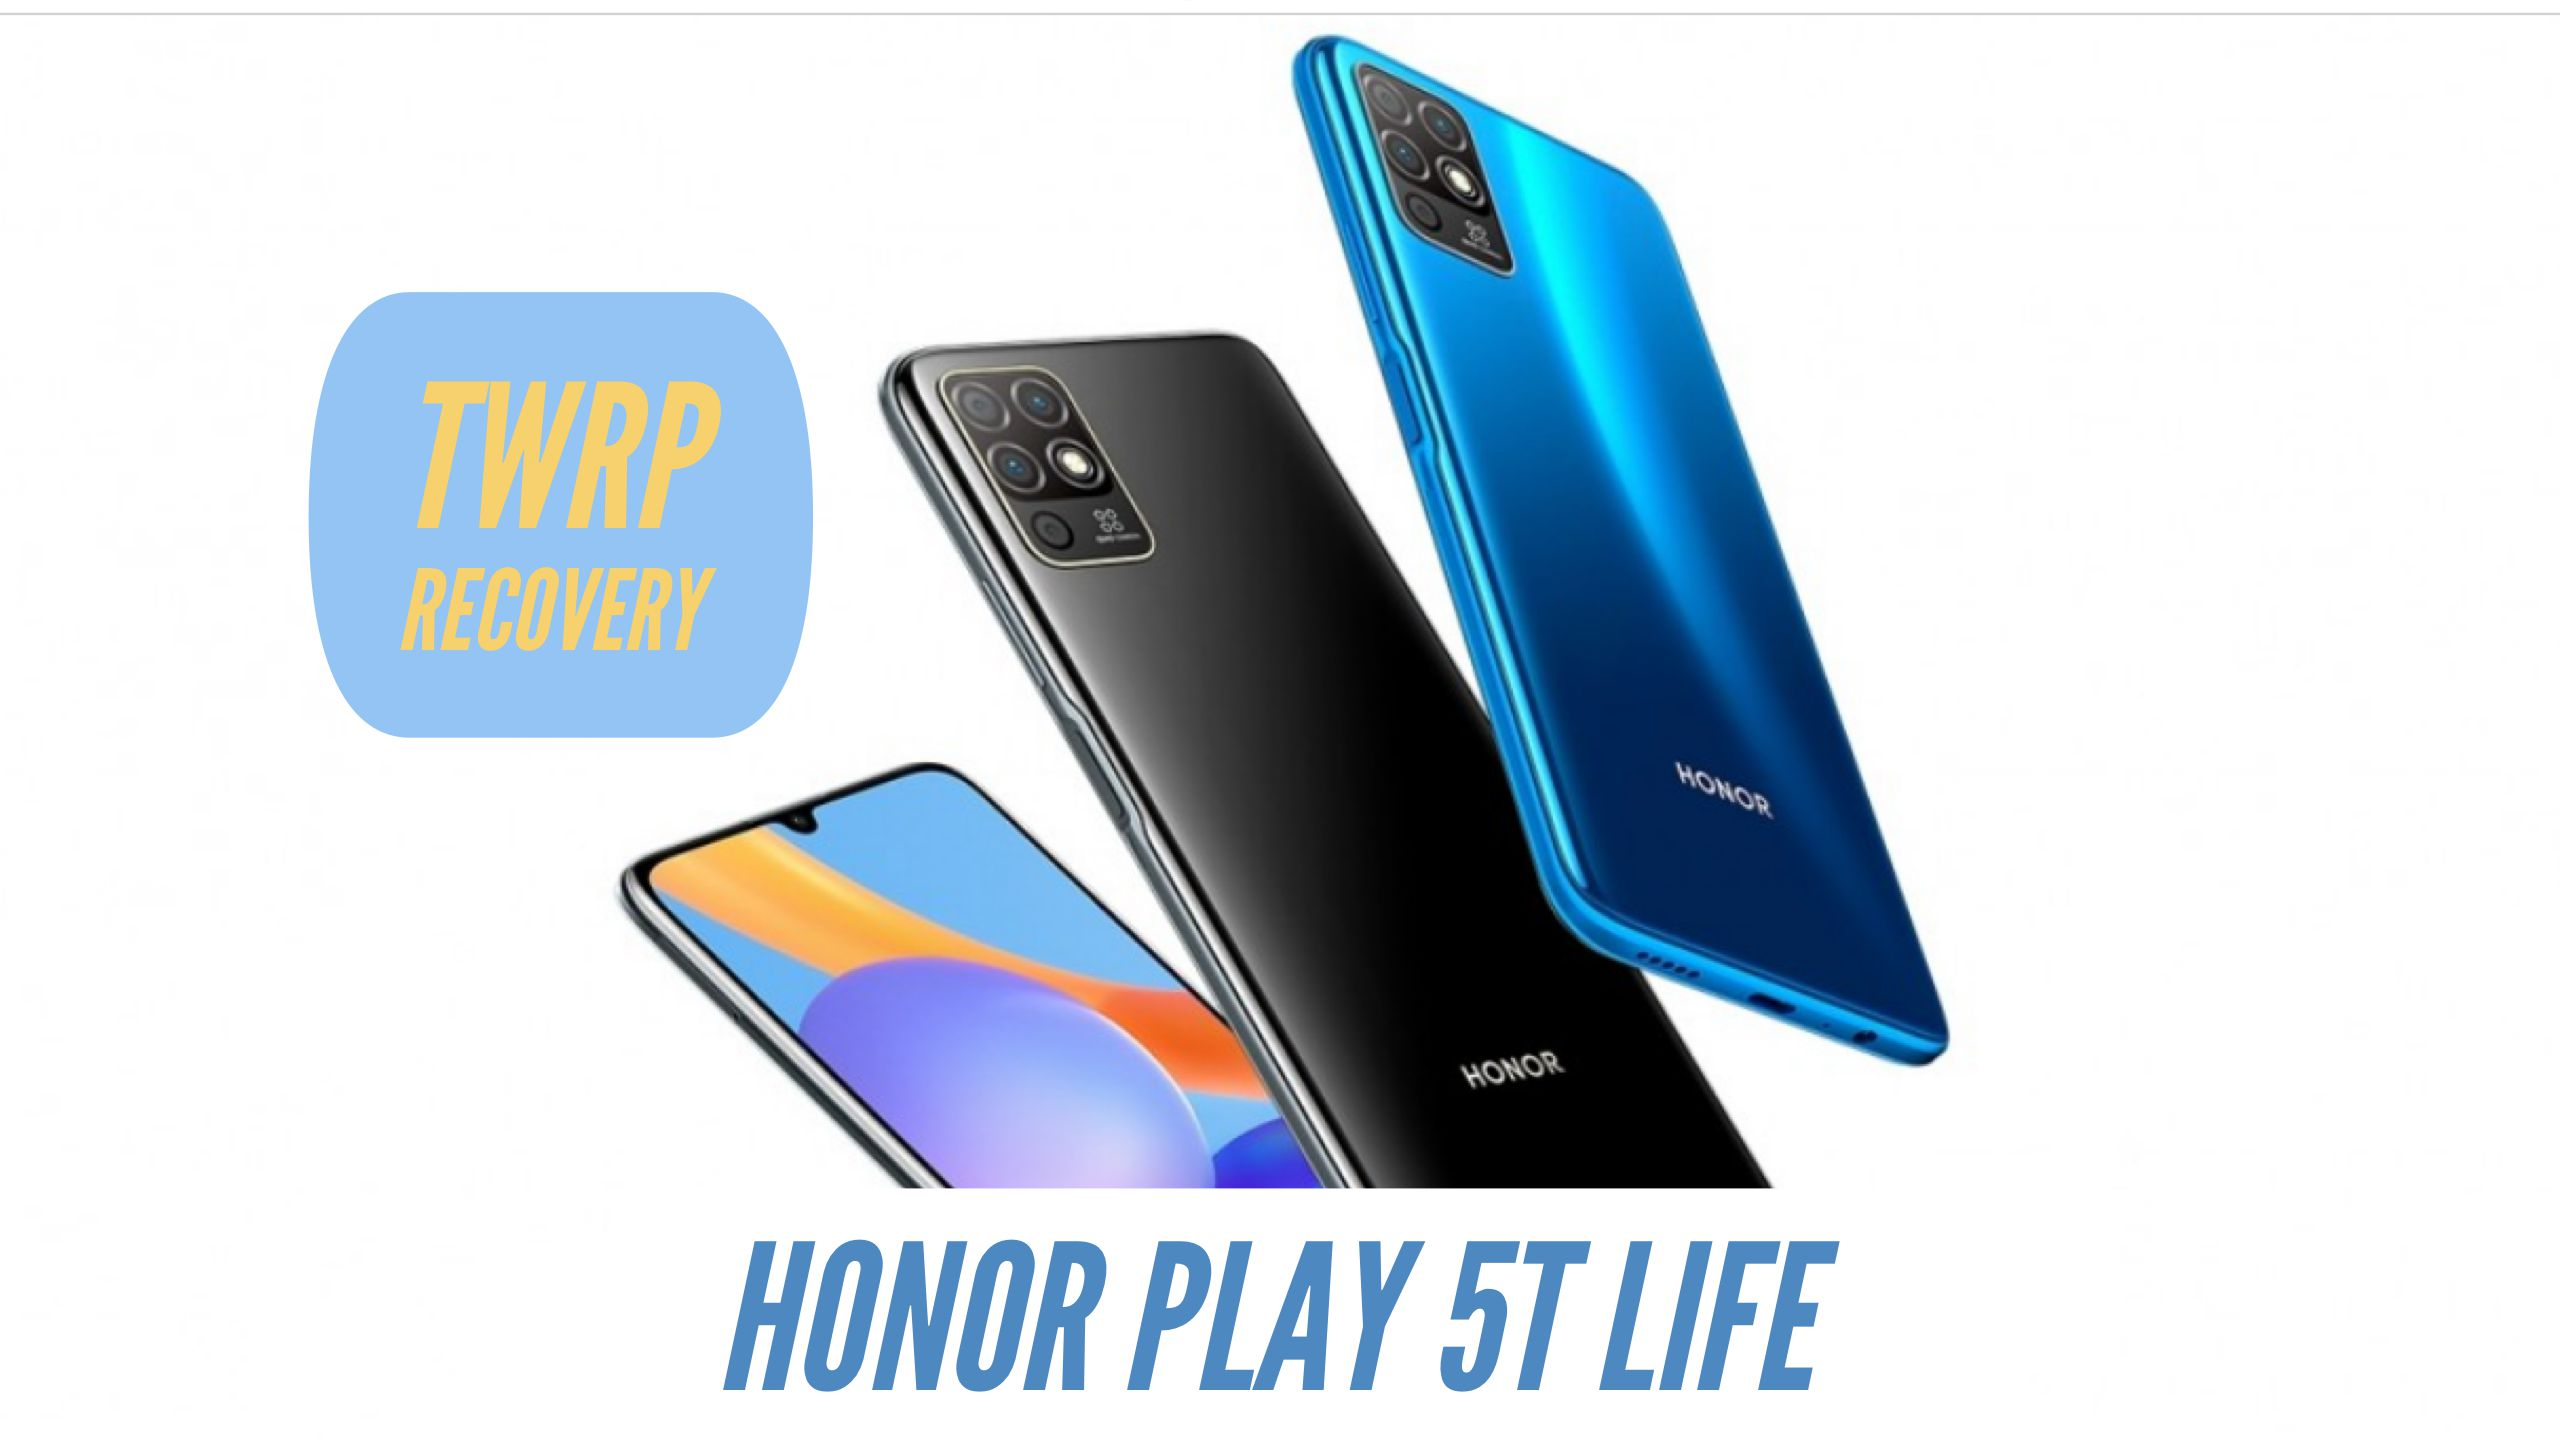 Honor Play 5T Life TWRP Recovery